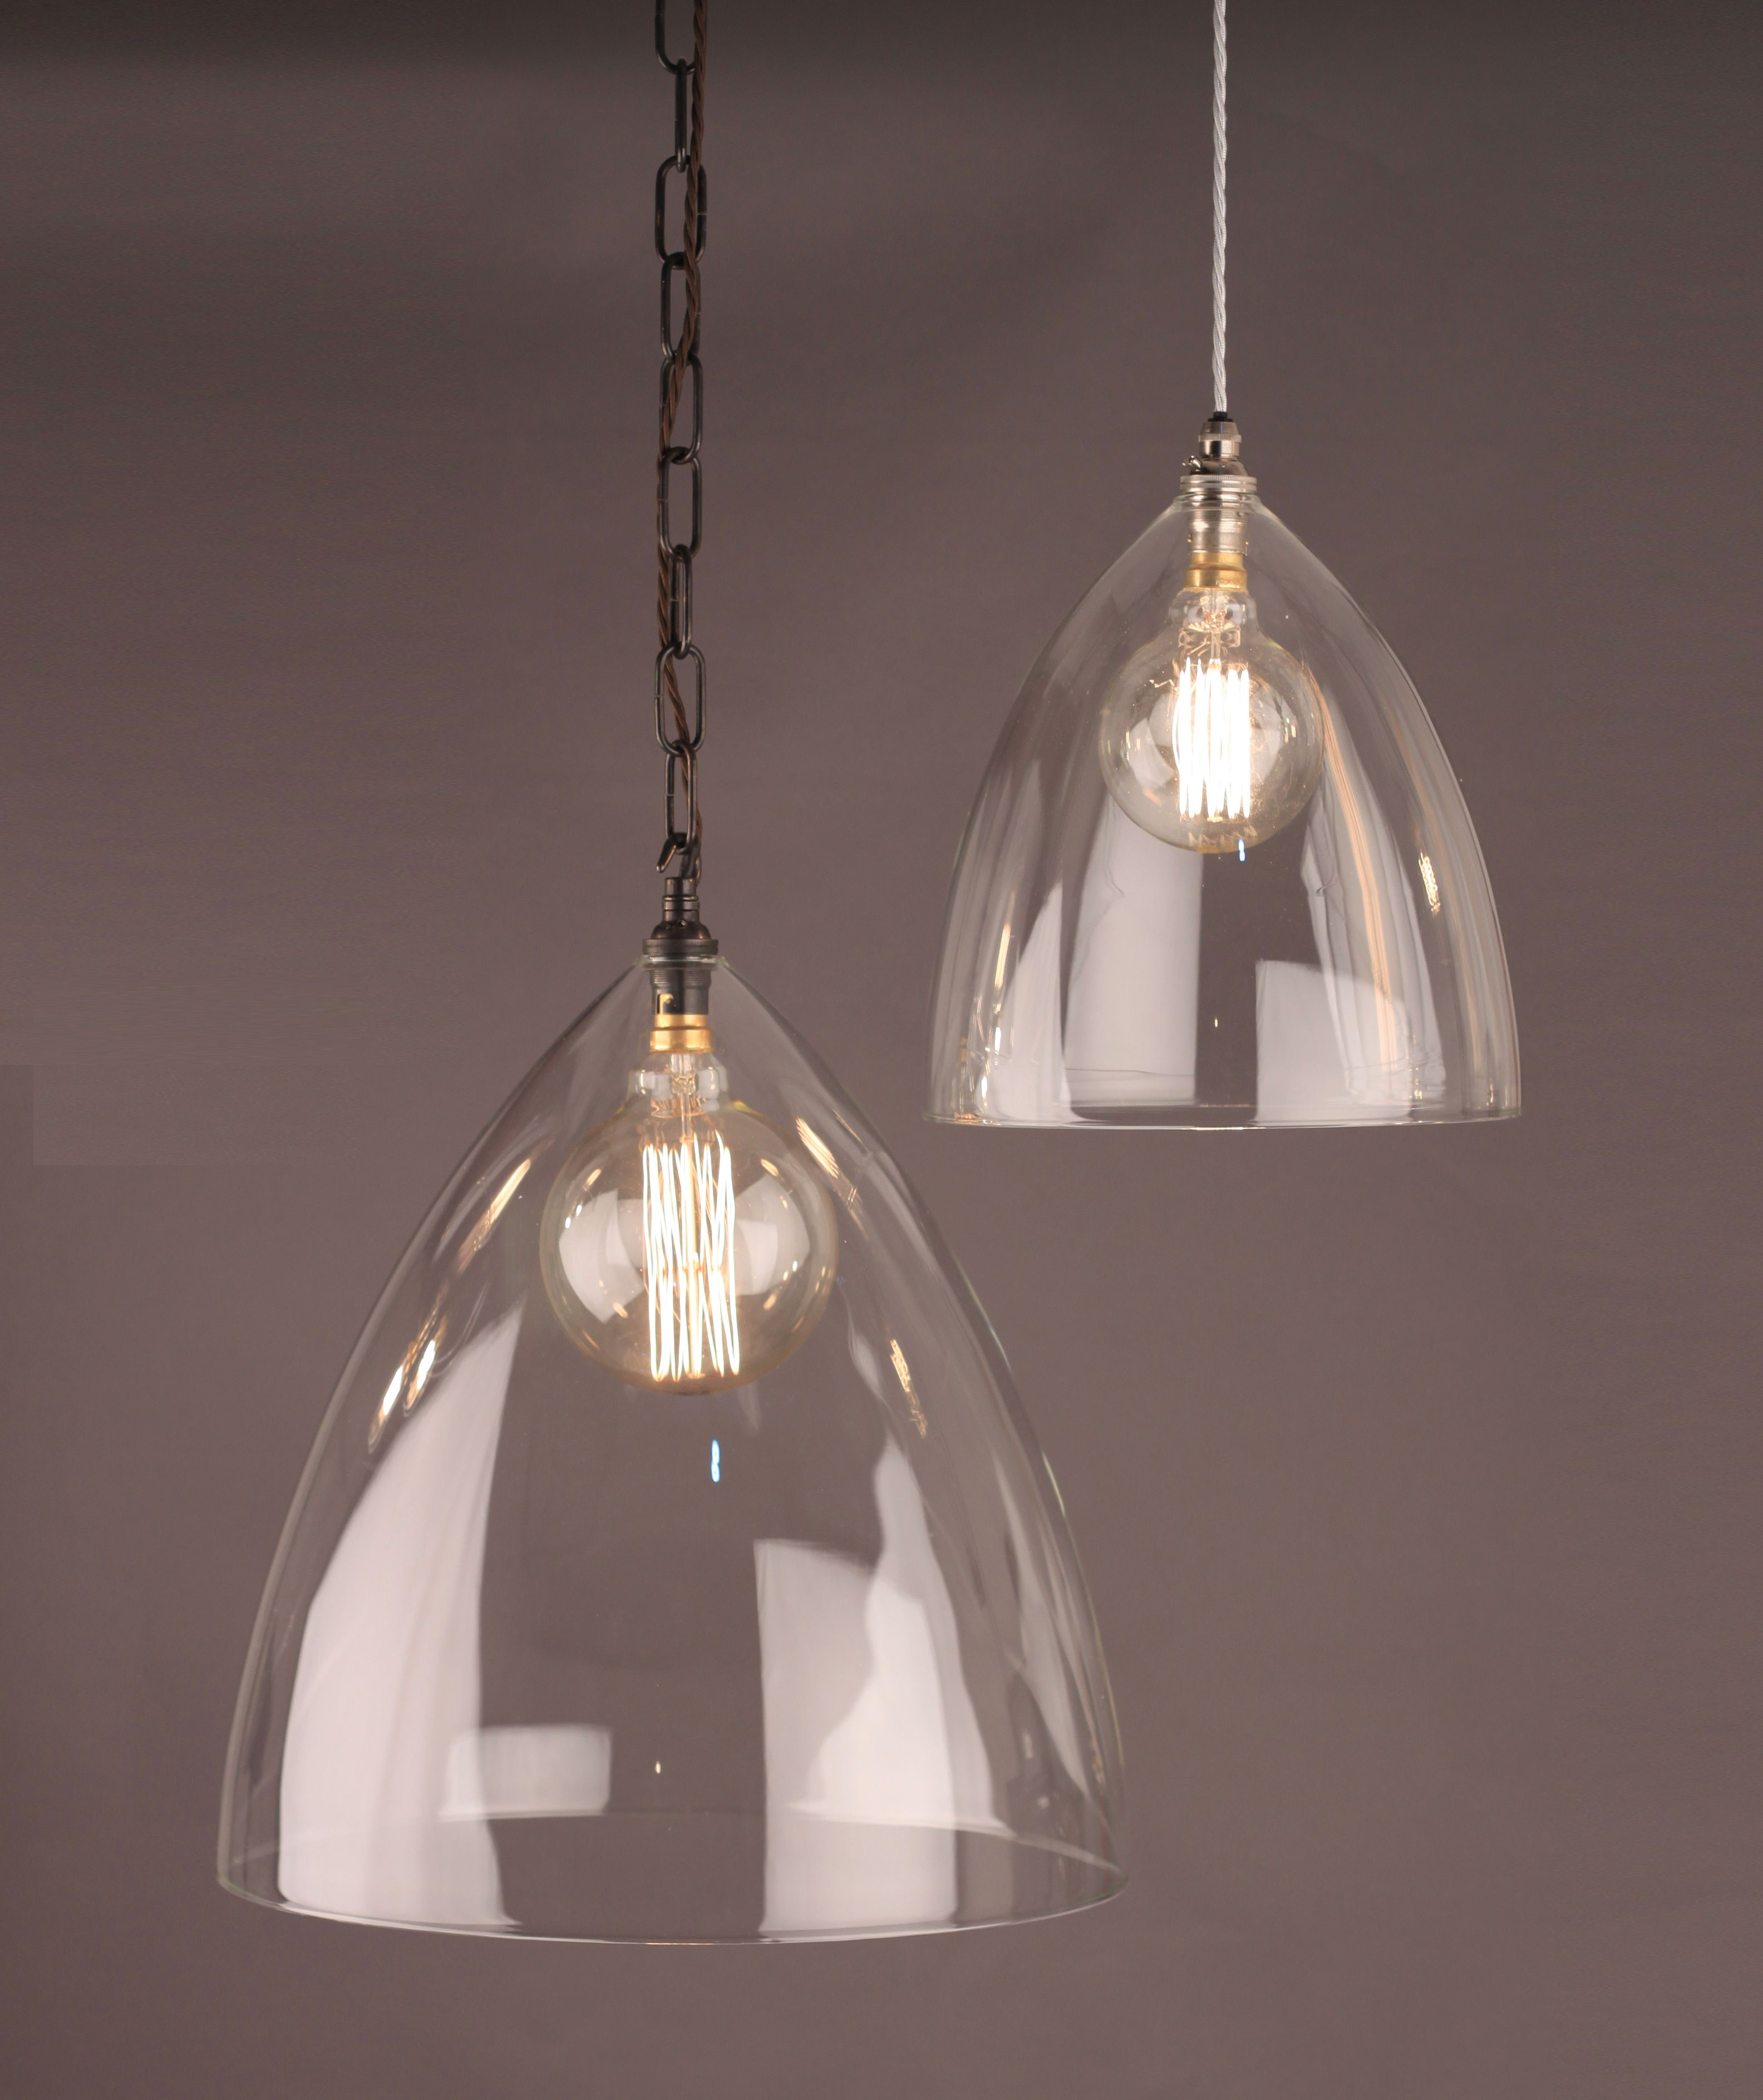 glass house retro clear product ltd light ceilings img pendant clearance ceiling lights